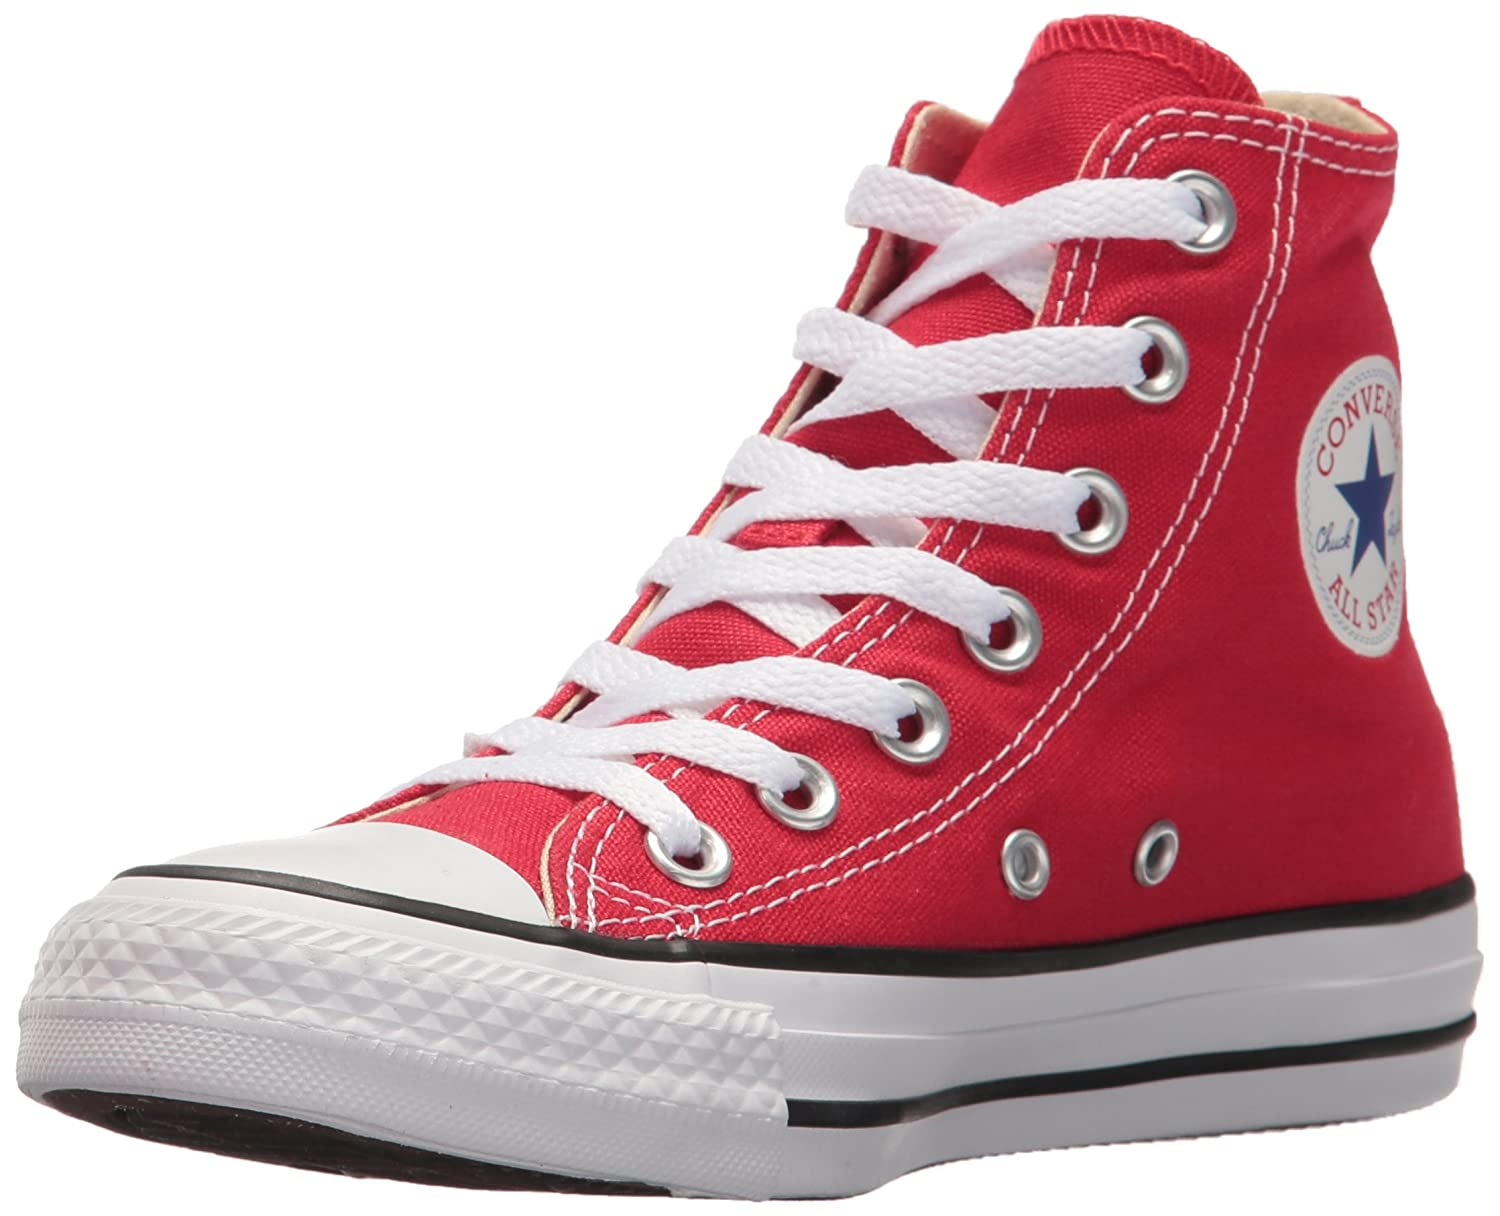 Converse Chuck Taylor All Star Seasonal Color Hi B076CVWSD6 7 D(M) US / 9 B(M) US / 40 EUR|Red